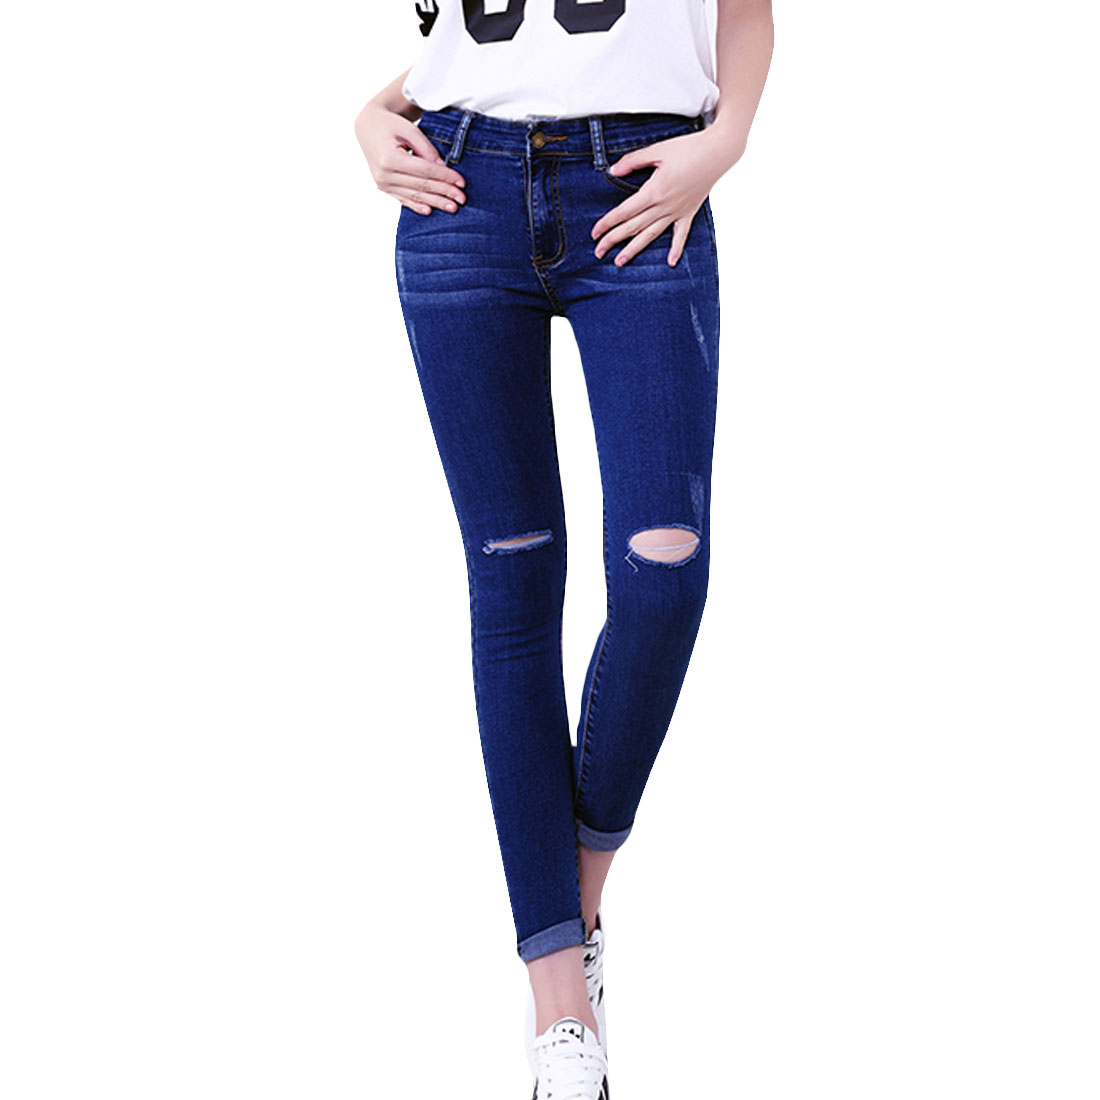 Plus size S-5XL Women Jeans 2016 Female Denim Strench Jeans Trousers Blue Skinny Hole Ripped Pencil Pants Femme American apparel(China (Mainland))